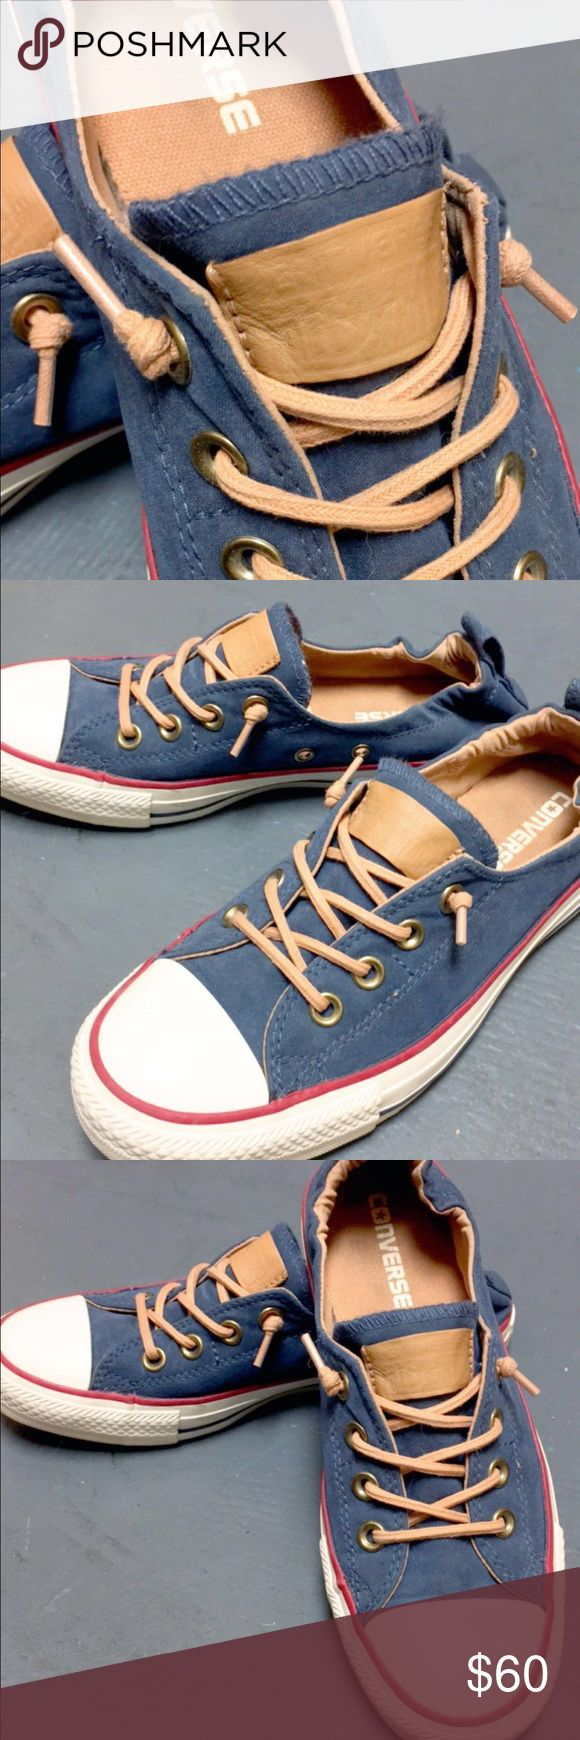 Converse shoreline RARE color combo Worn a handful of times, and unable to find them anywhere else. Super cute, Converse Women's Blue Chuck Taylor All Star 'peached - Shoreline' Low Top Slip-on Sneaker. converse slip ons. Size 7.5. Converse Shoes Sneakers